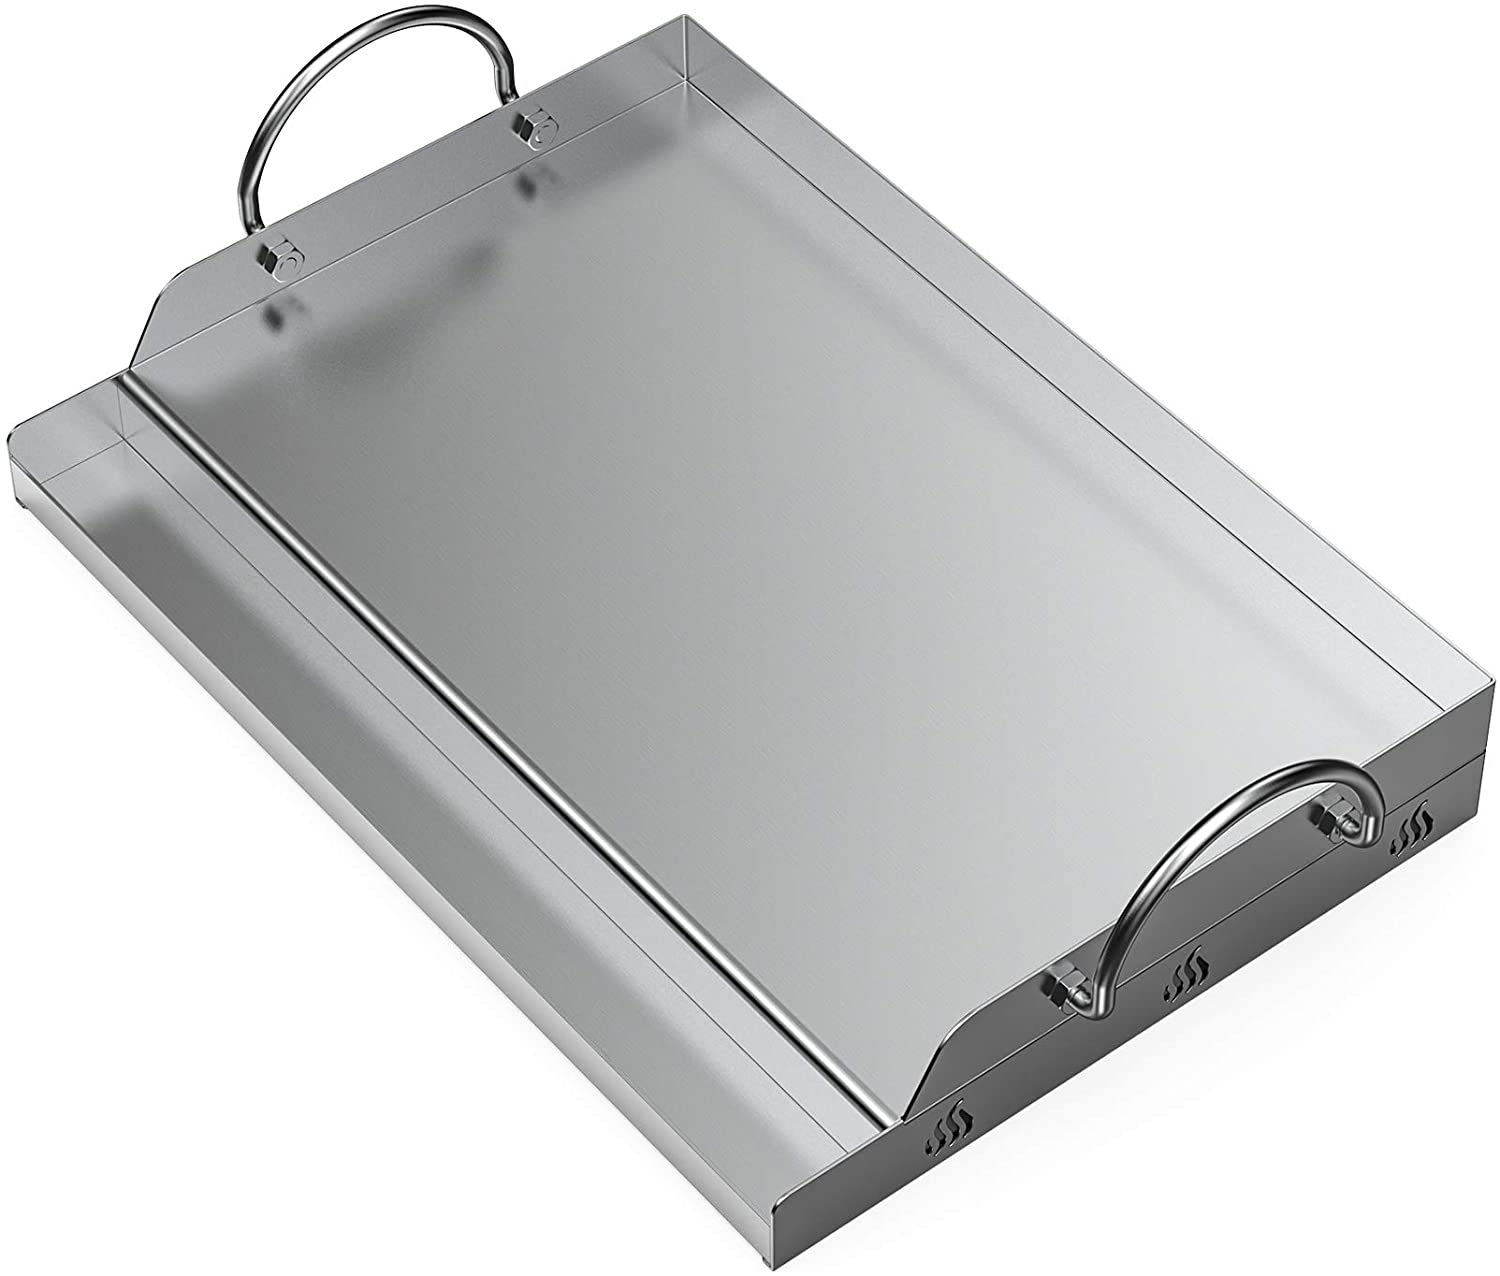 Onlyfire Universal Stainless Steel Griddle for BBQ Grills With Removable Handles